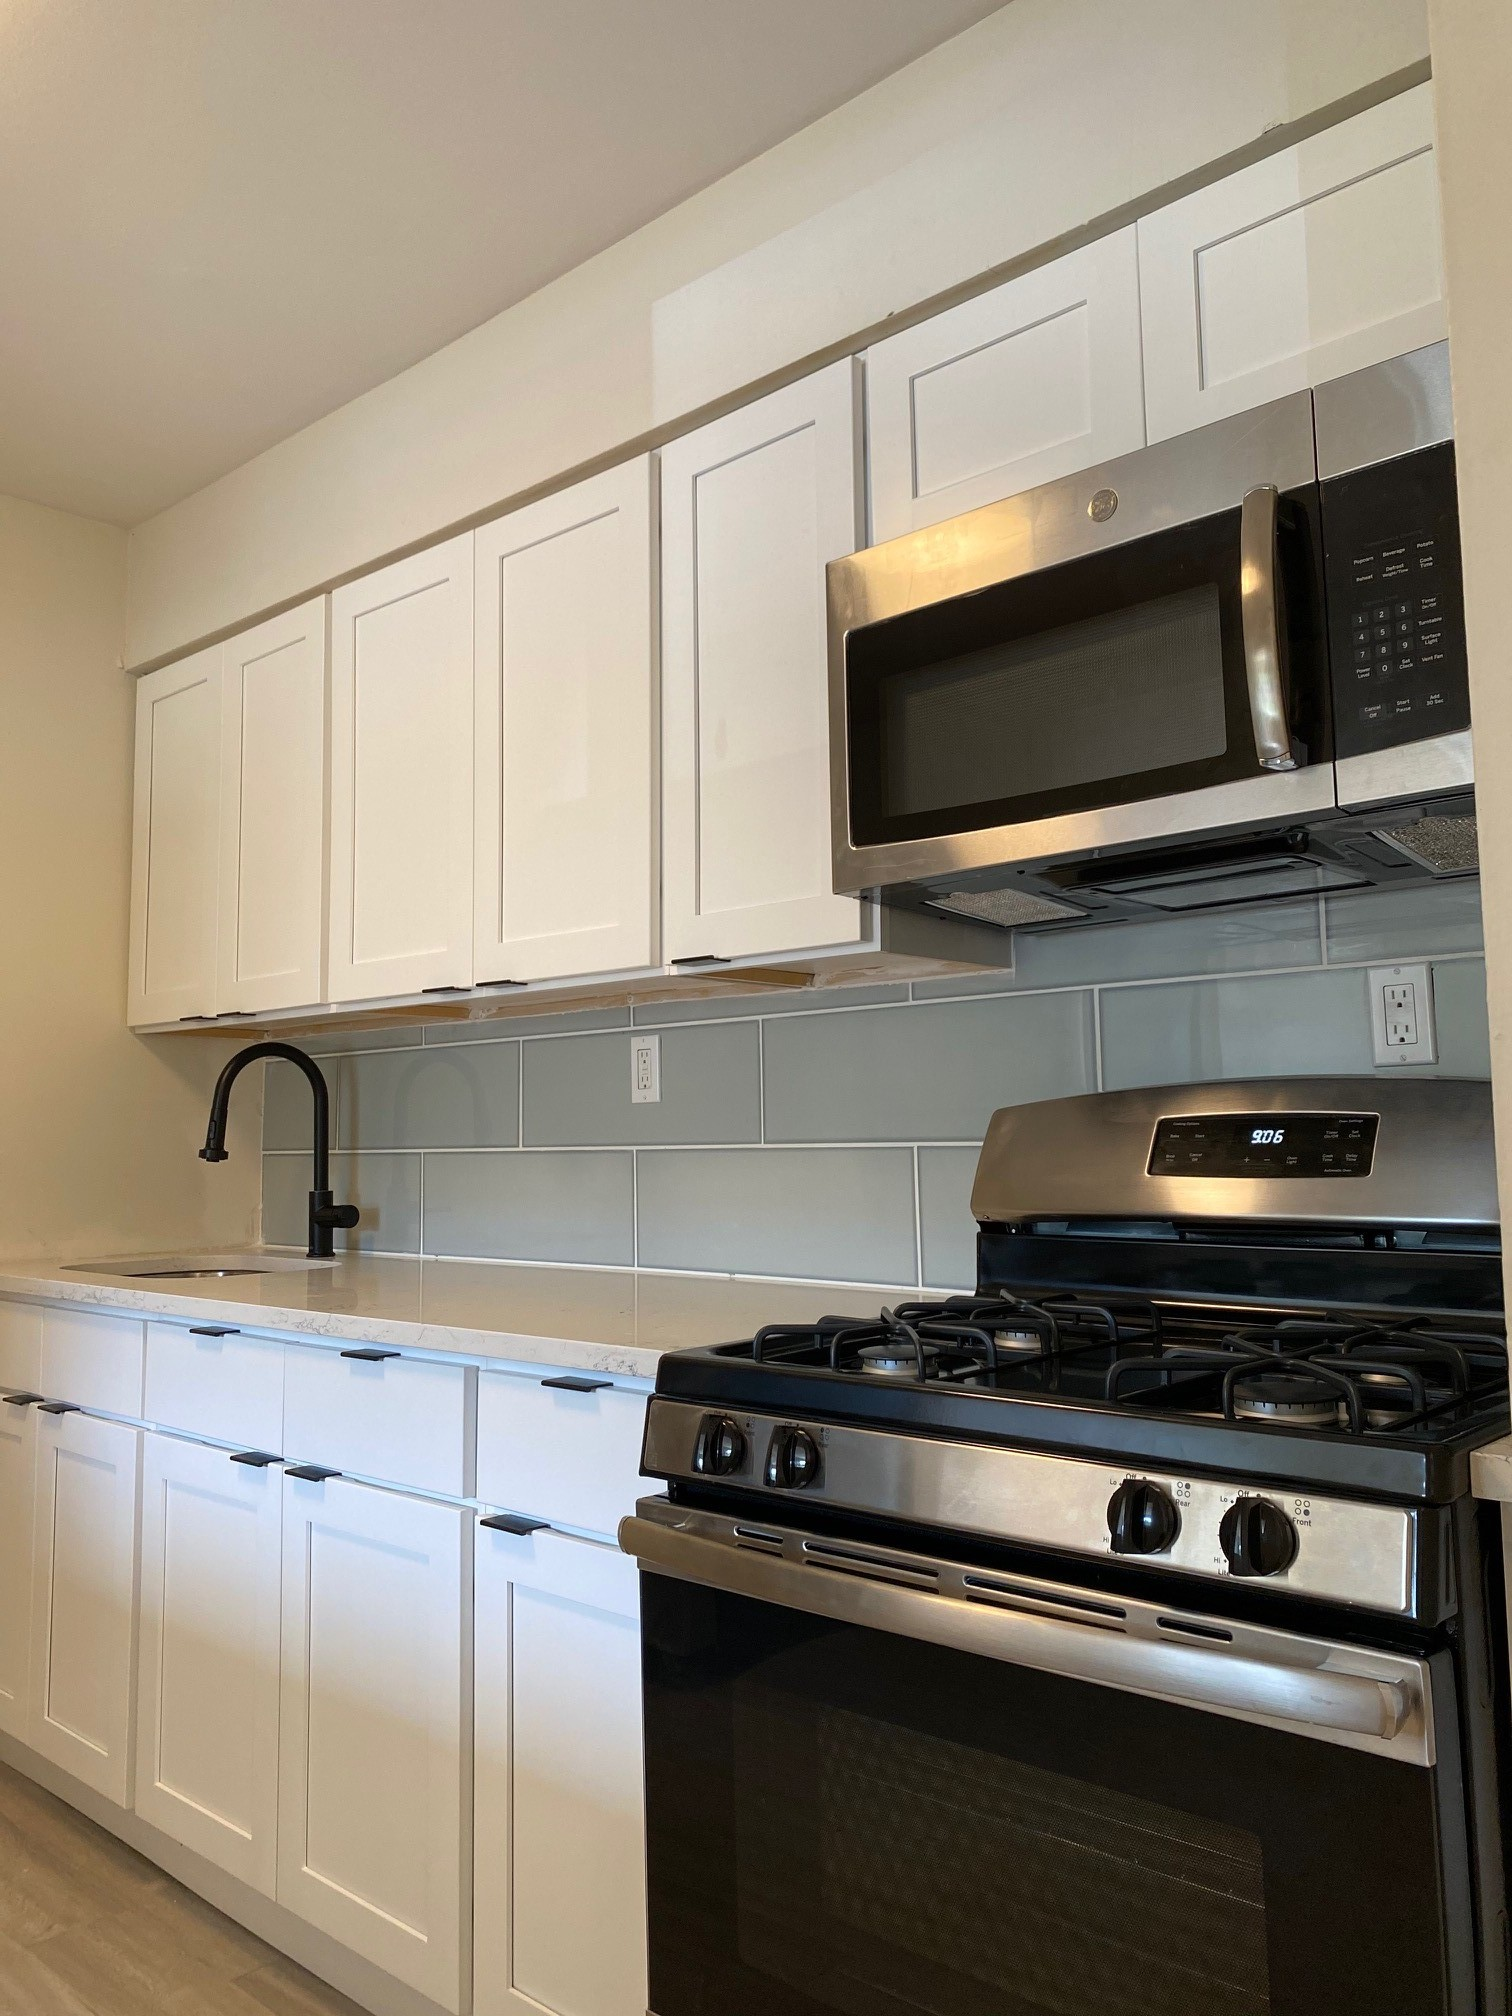 Oven, Range, and Microwave at Hampton Gardens Apartments in Middlesex, New Jersey